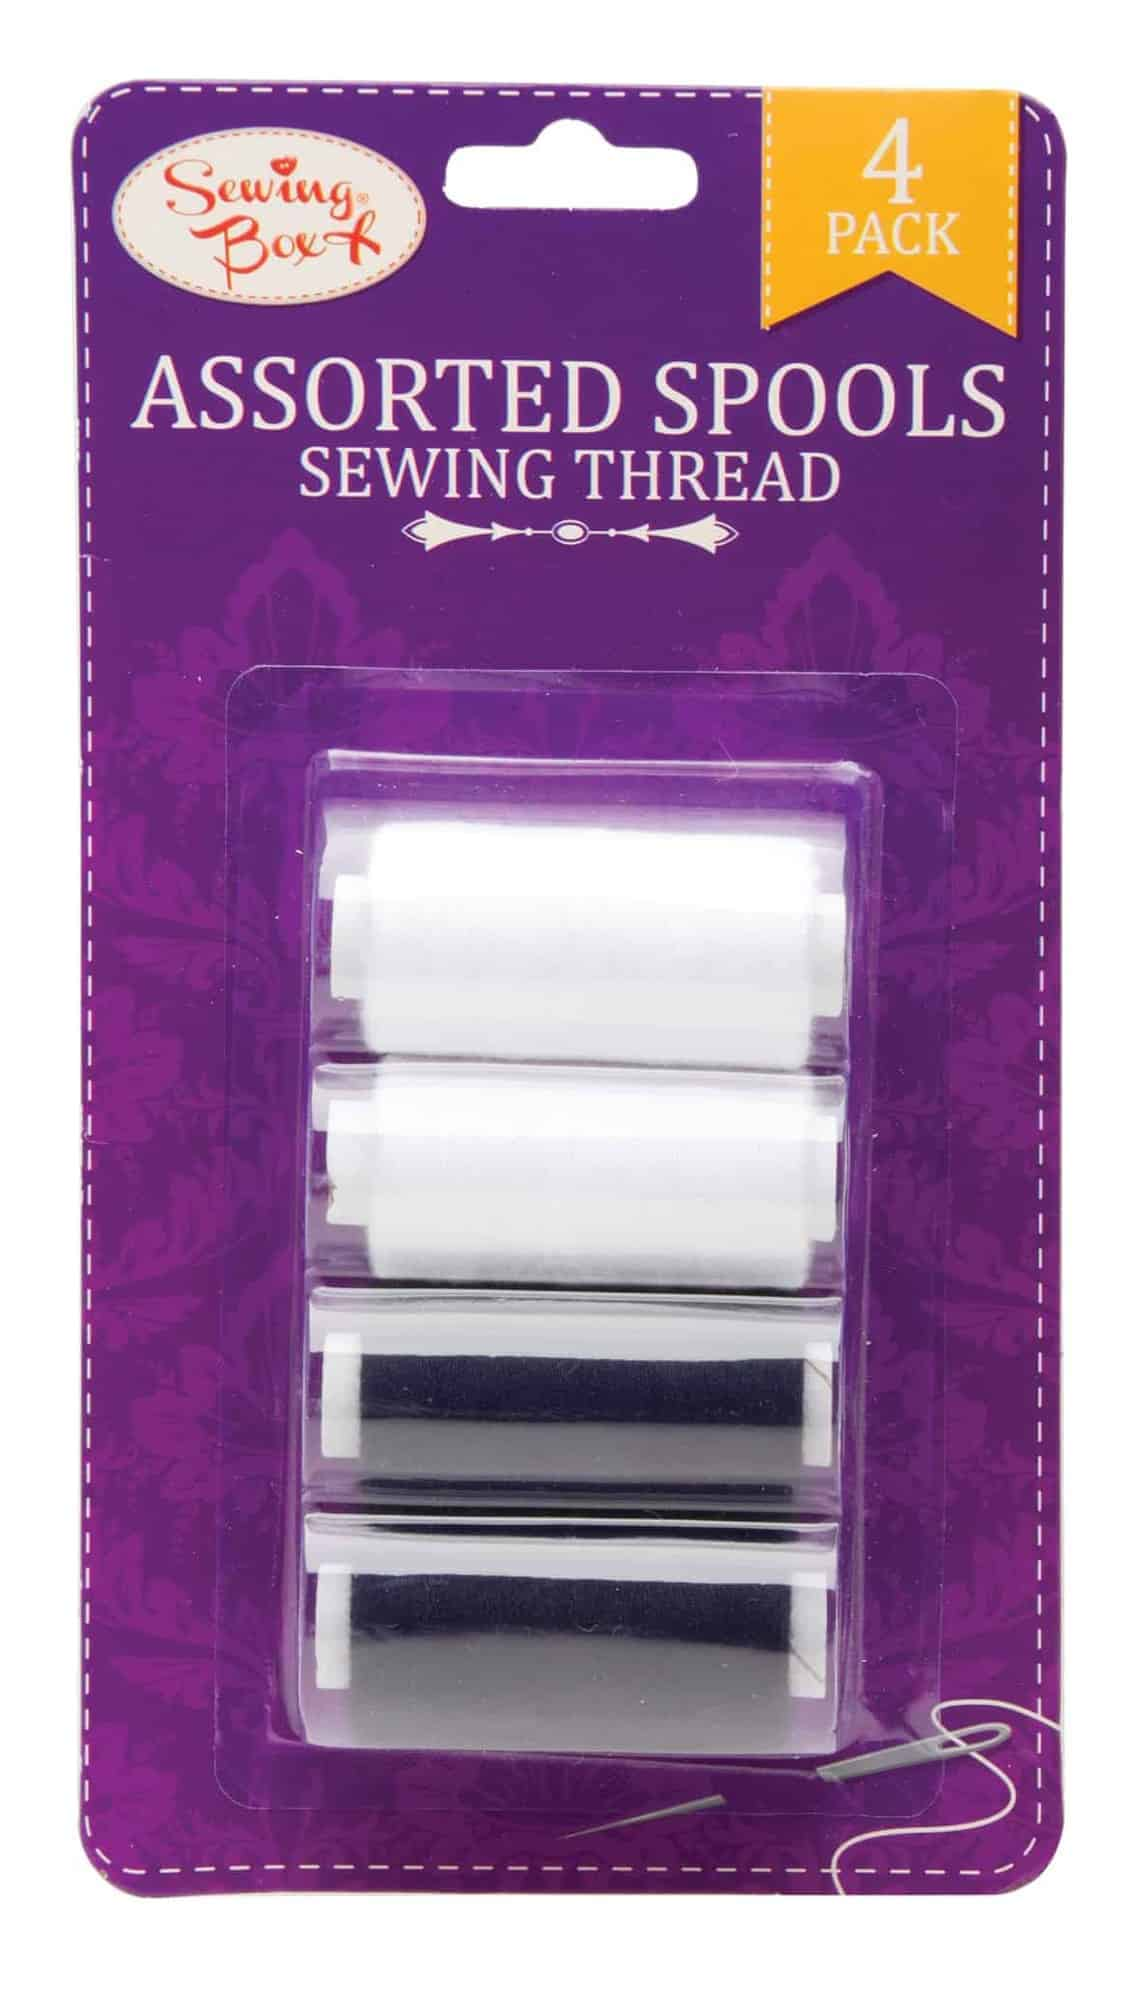 Sewing Box 4pk Black & White Sewing Thread on Spools